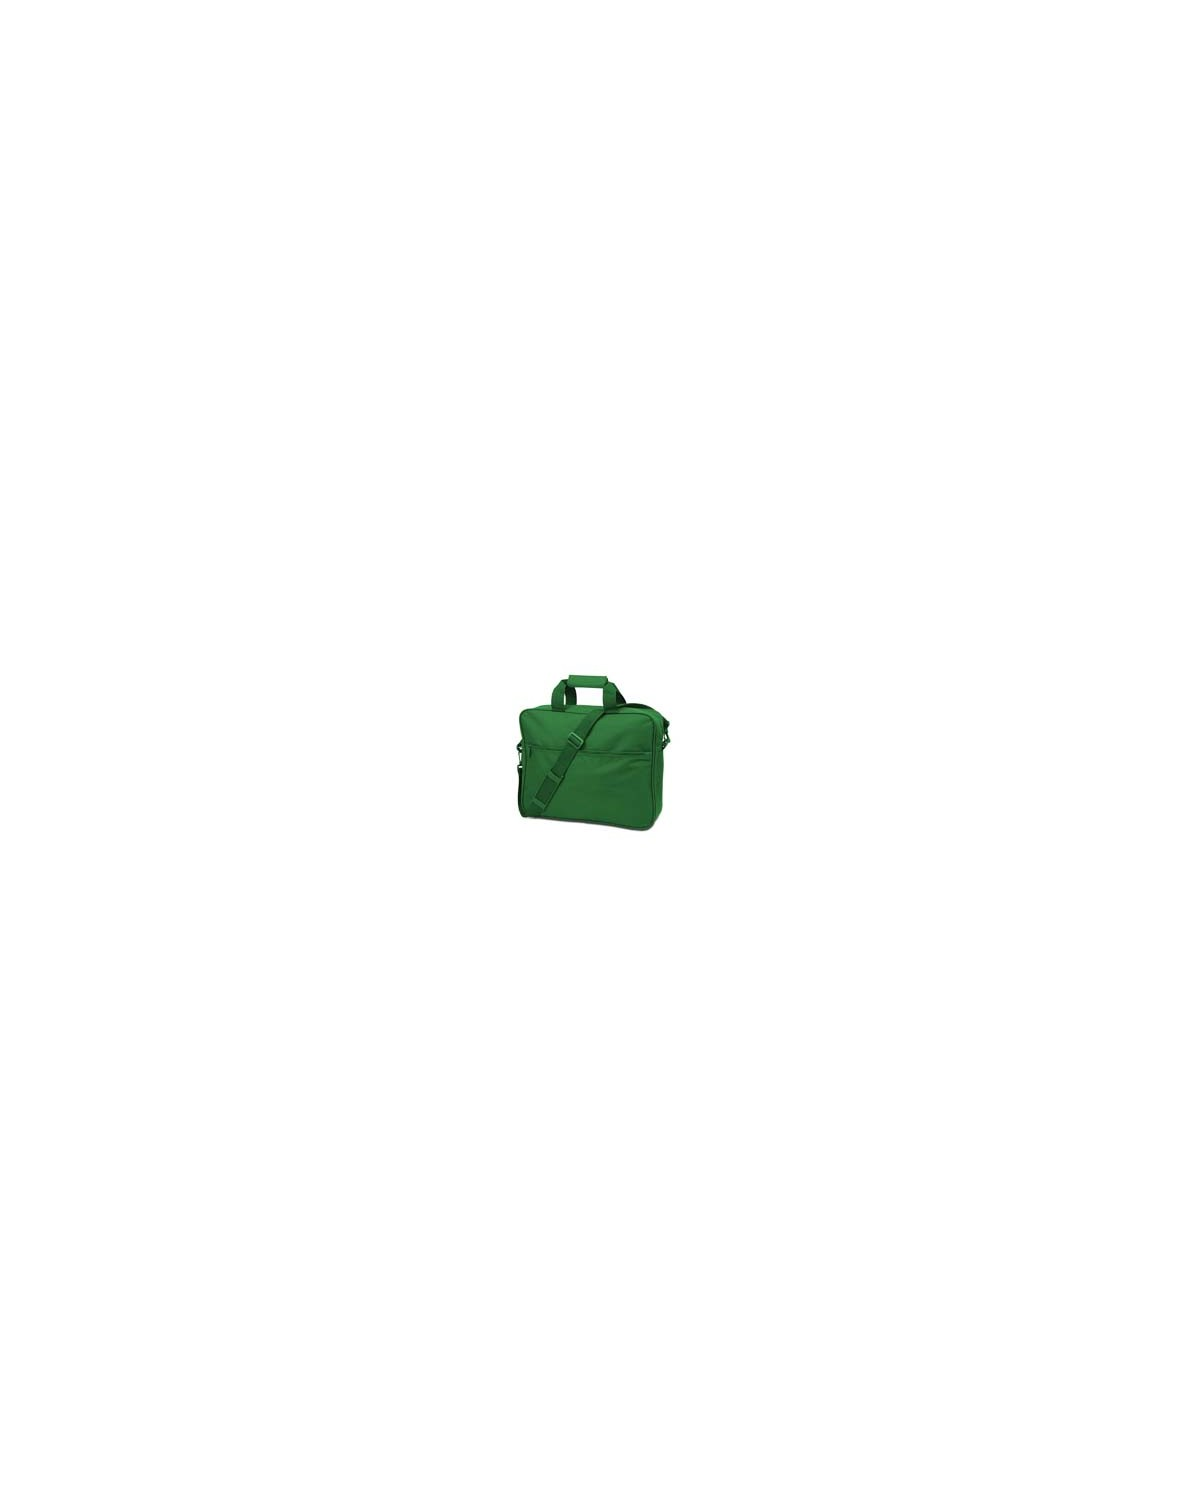 7703 Liberty Bags KELLY GREEN